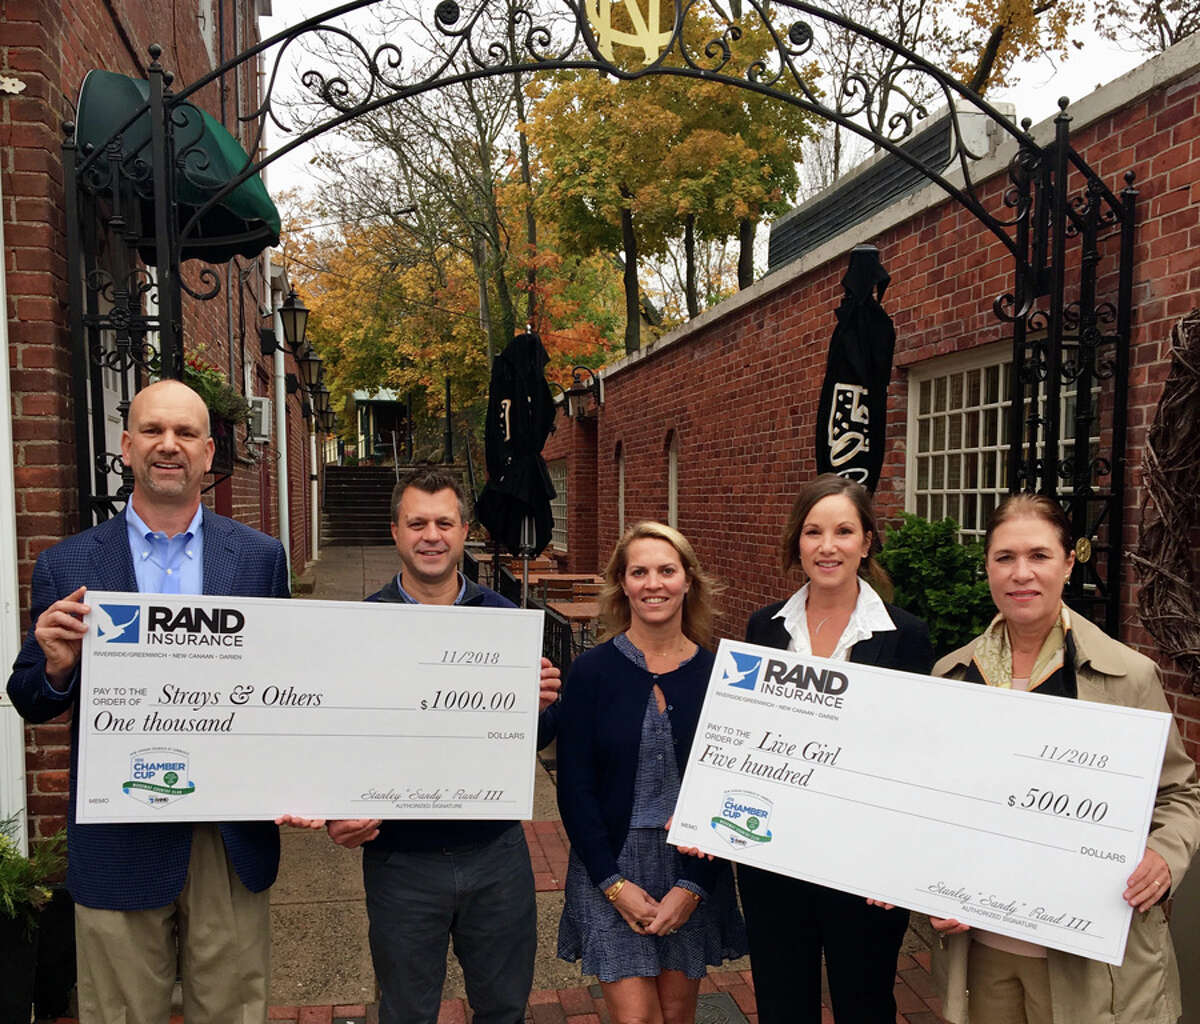 New Canaan: Rand Insurance has donated prize money from the New Canaan Chamber of Commerce's annual golf event for non profits. Shown with checks, from left, Nicholas